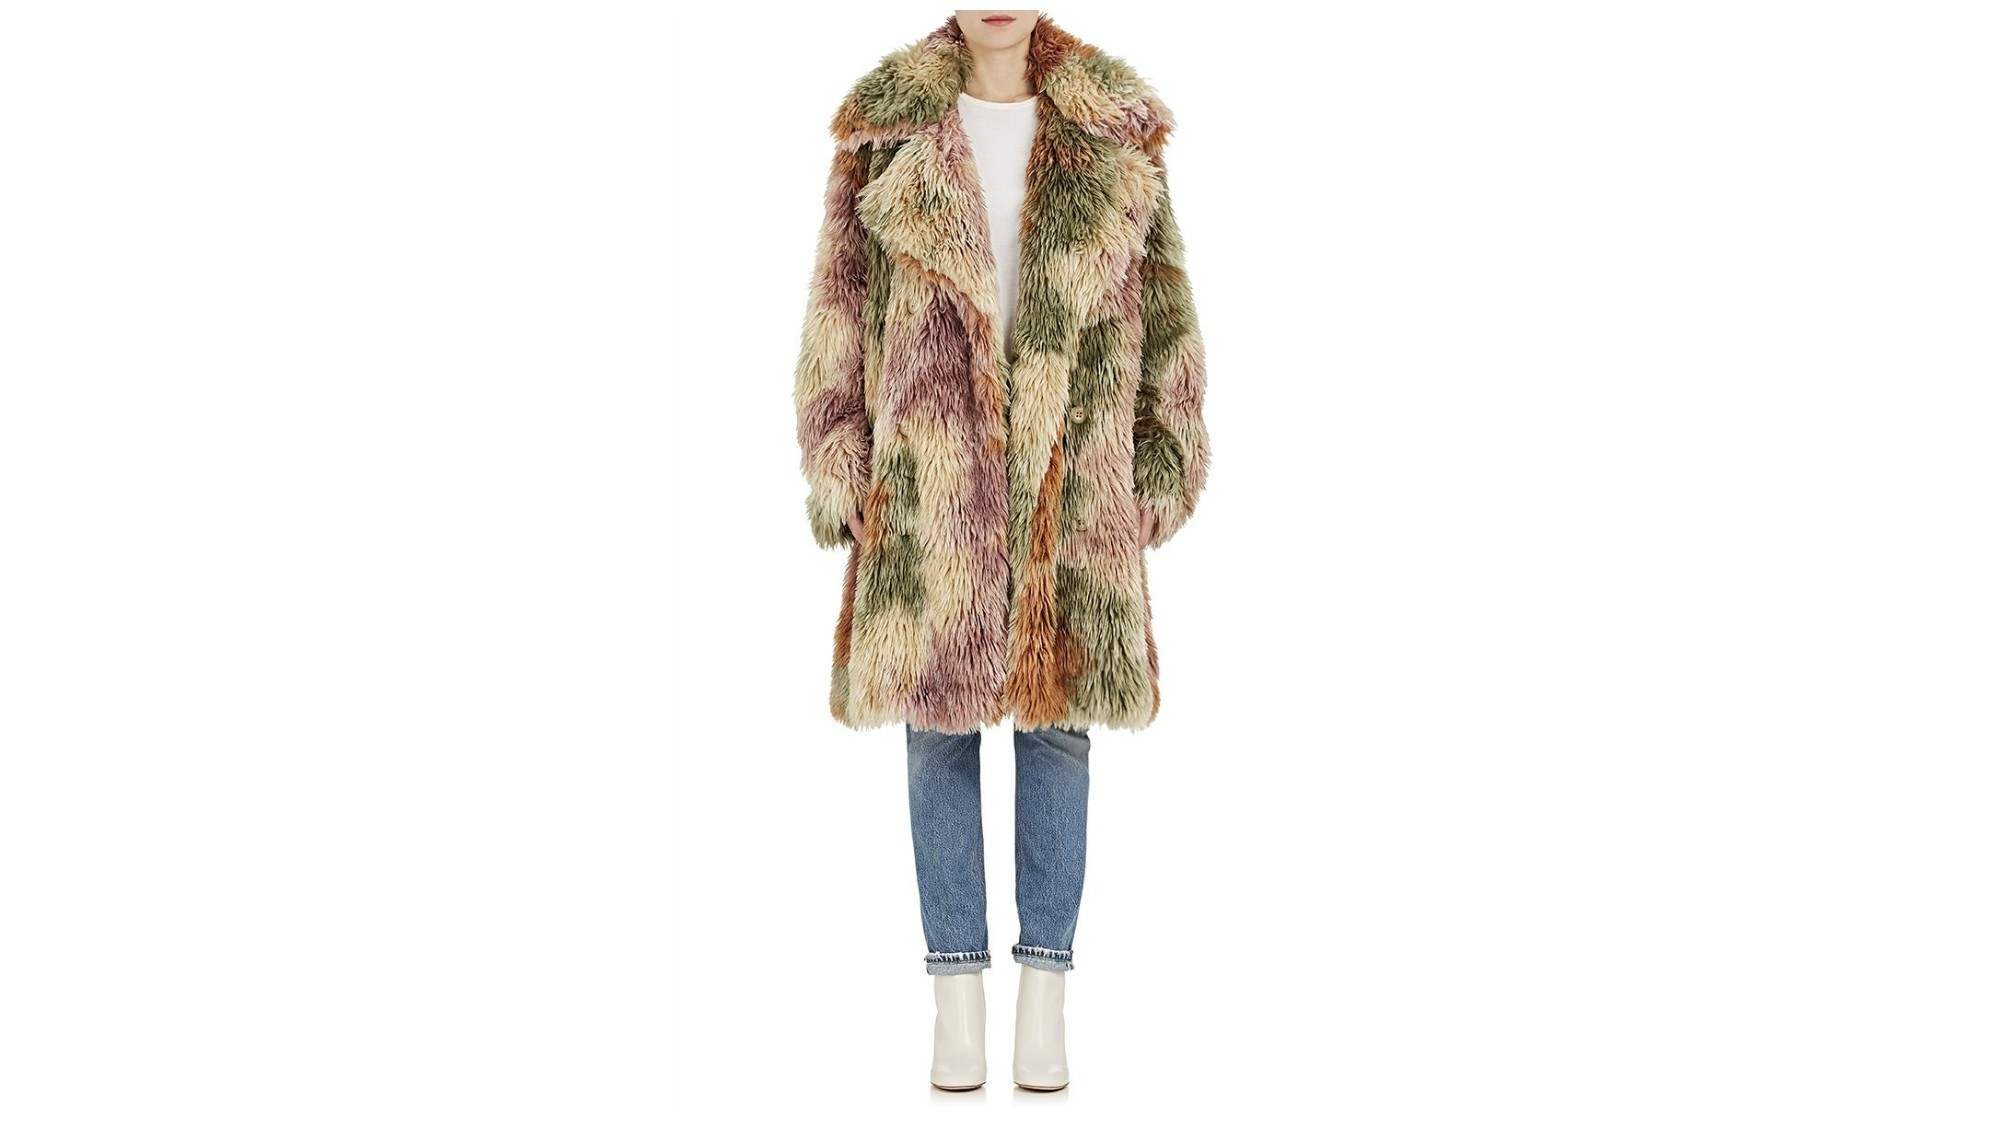 a79c6afe3c568 Wearing faux fur offers you a chance to look festive this season ...